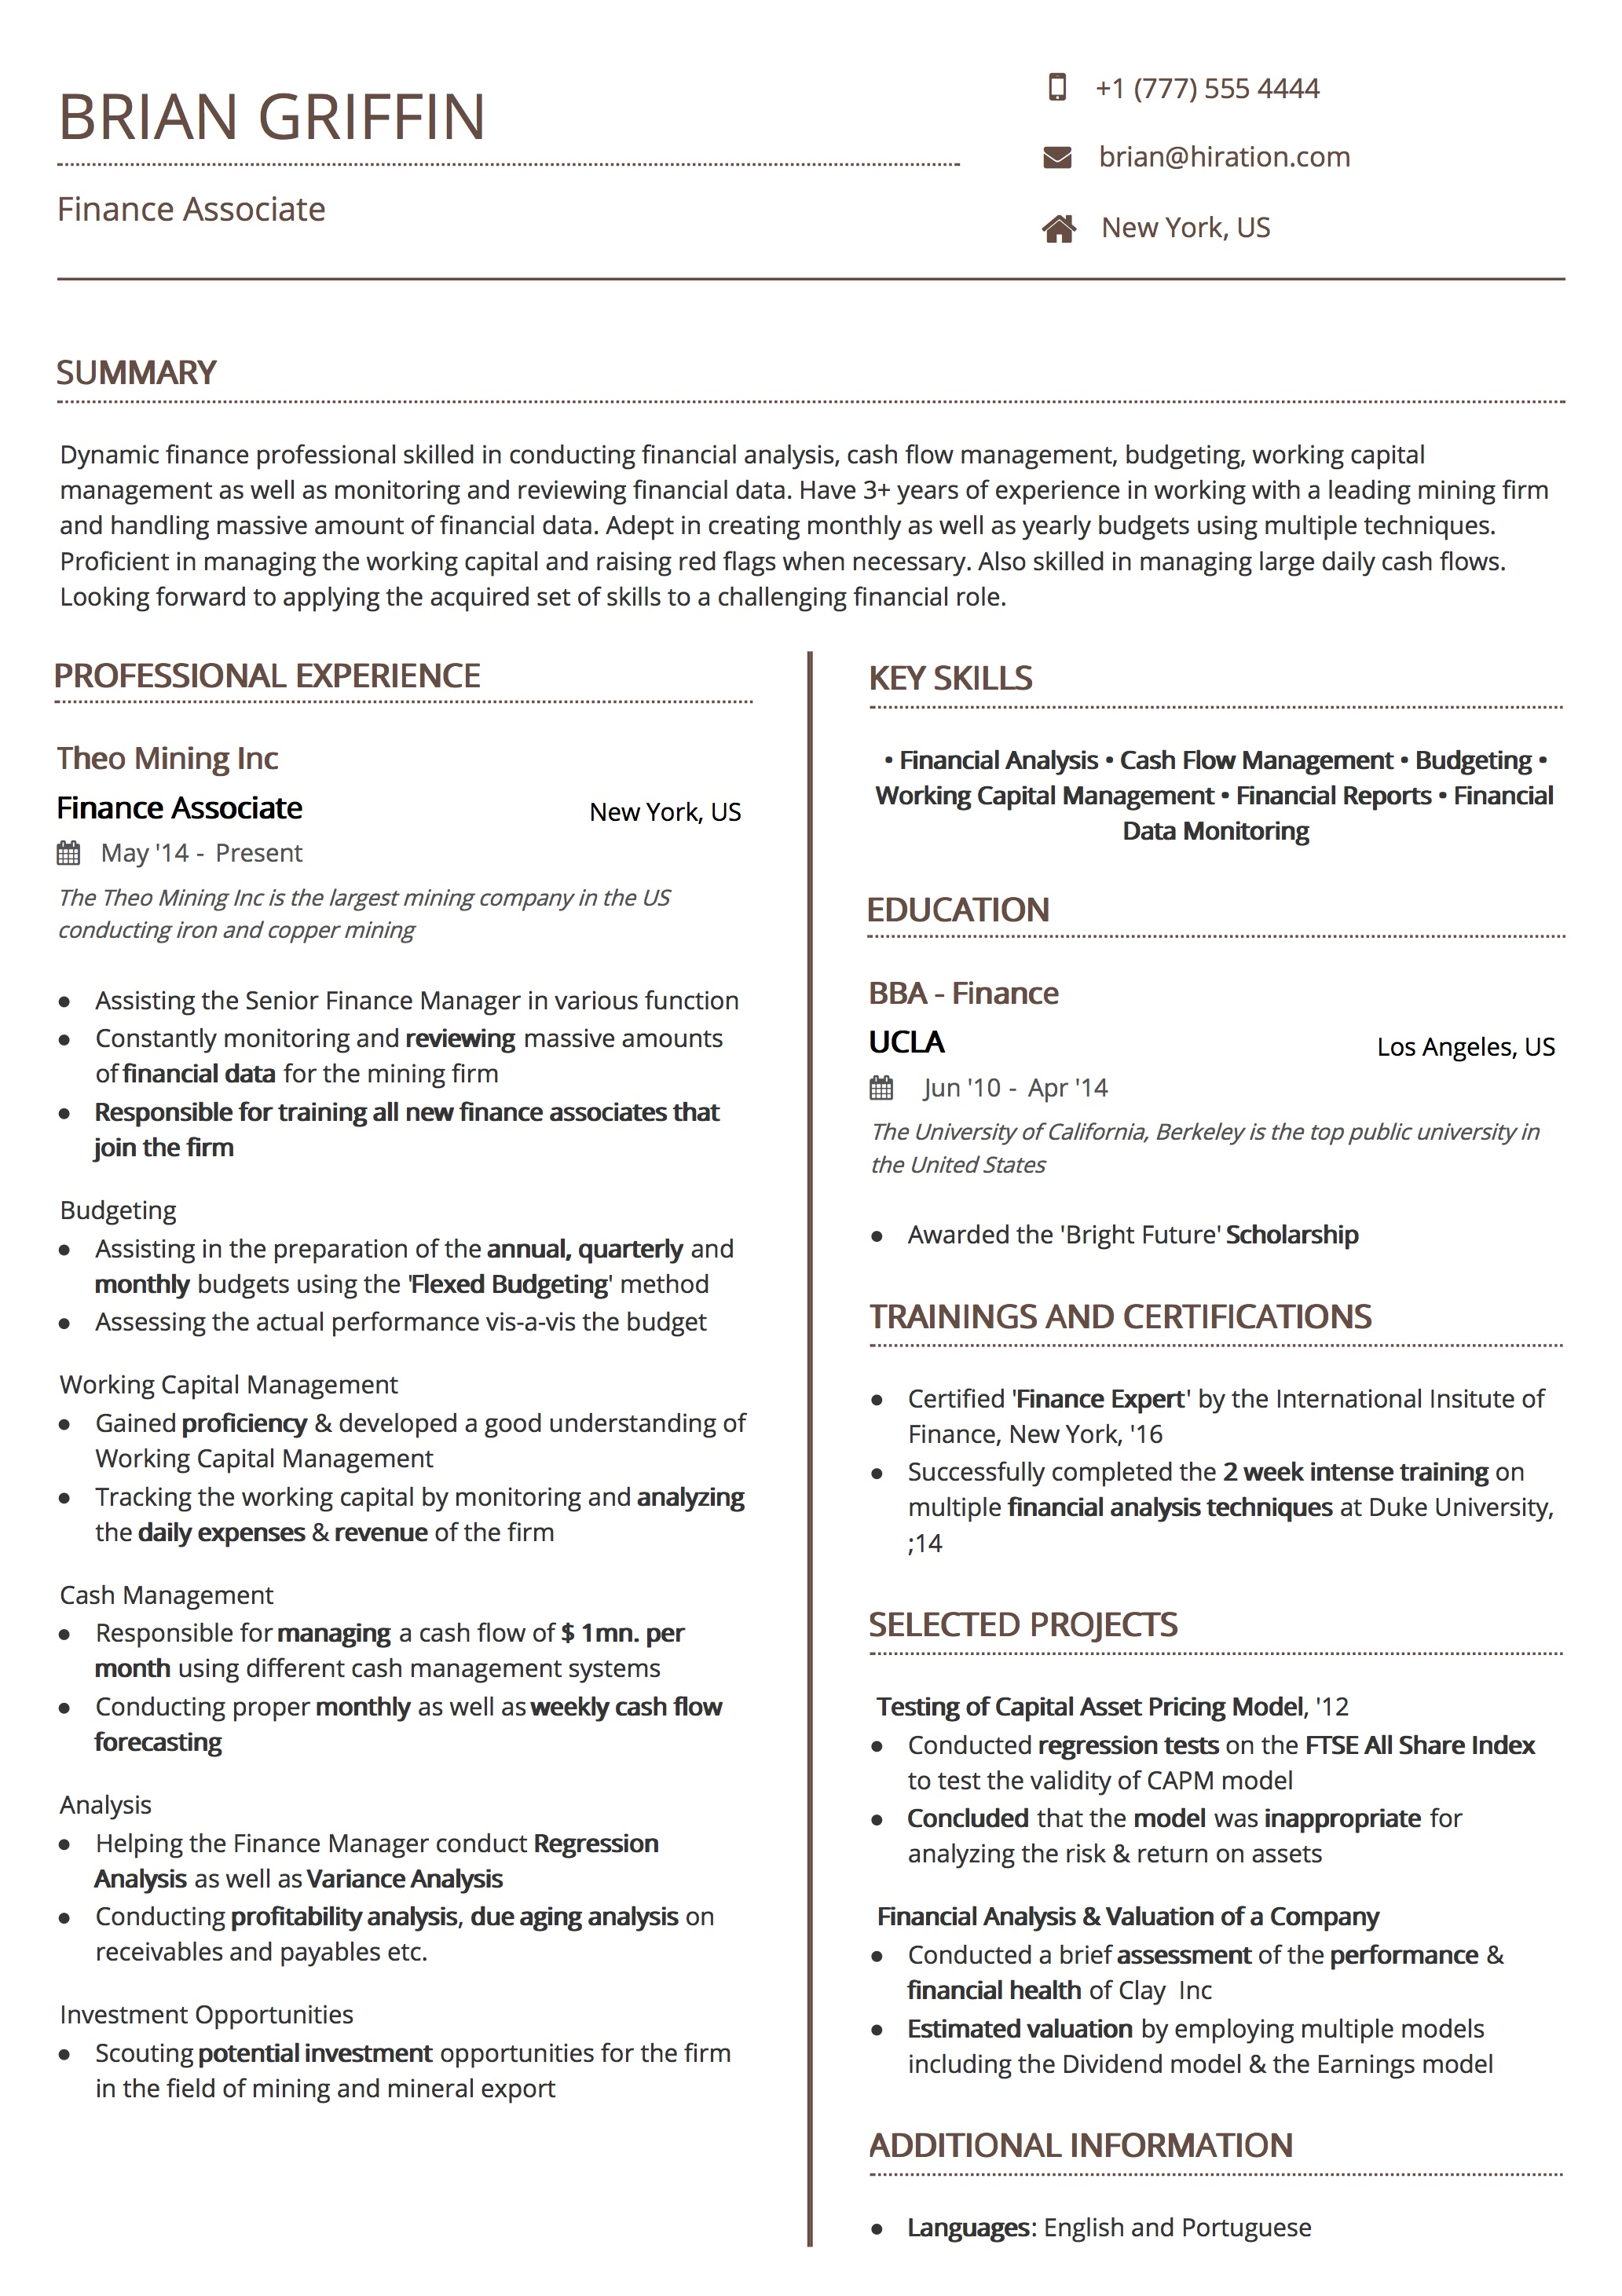 Resume Template: Uniform Brown